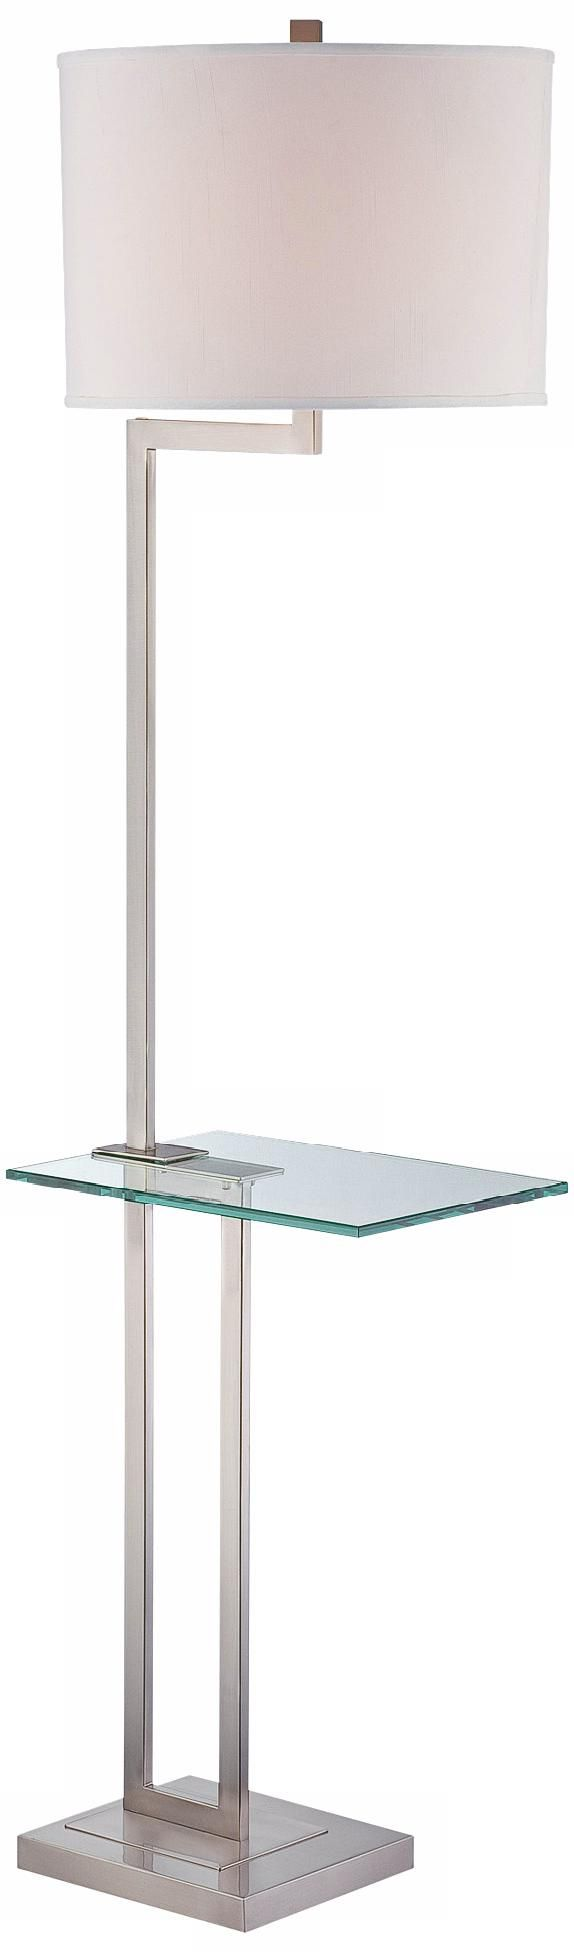 Floor lamp with tray table - Polished Steel Floor Lamp With Glass Tray Table